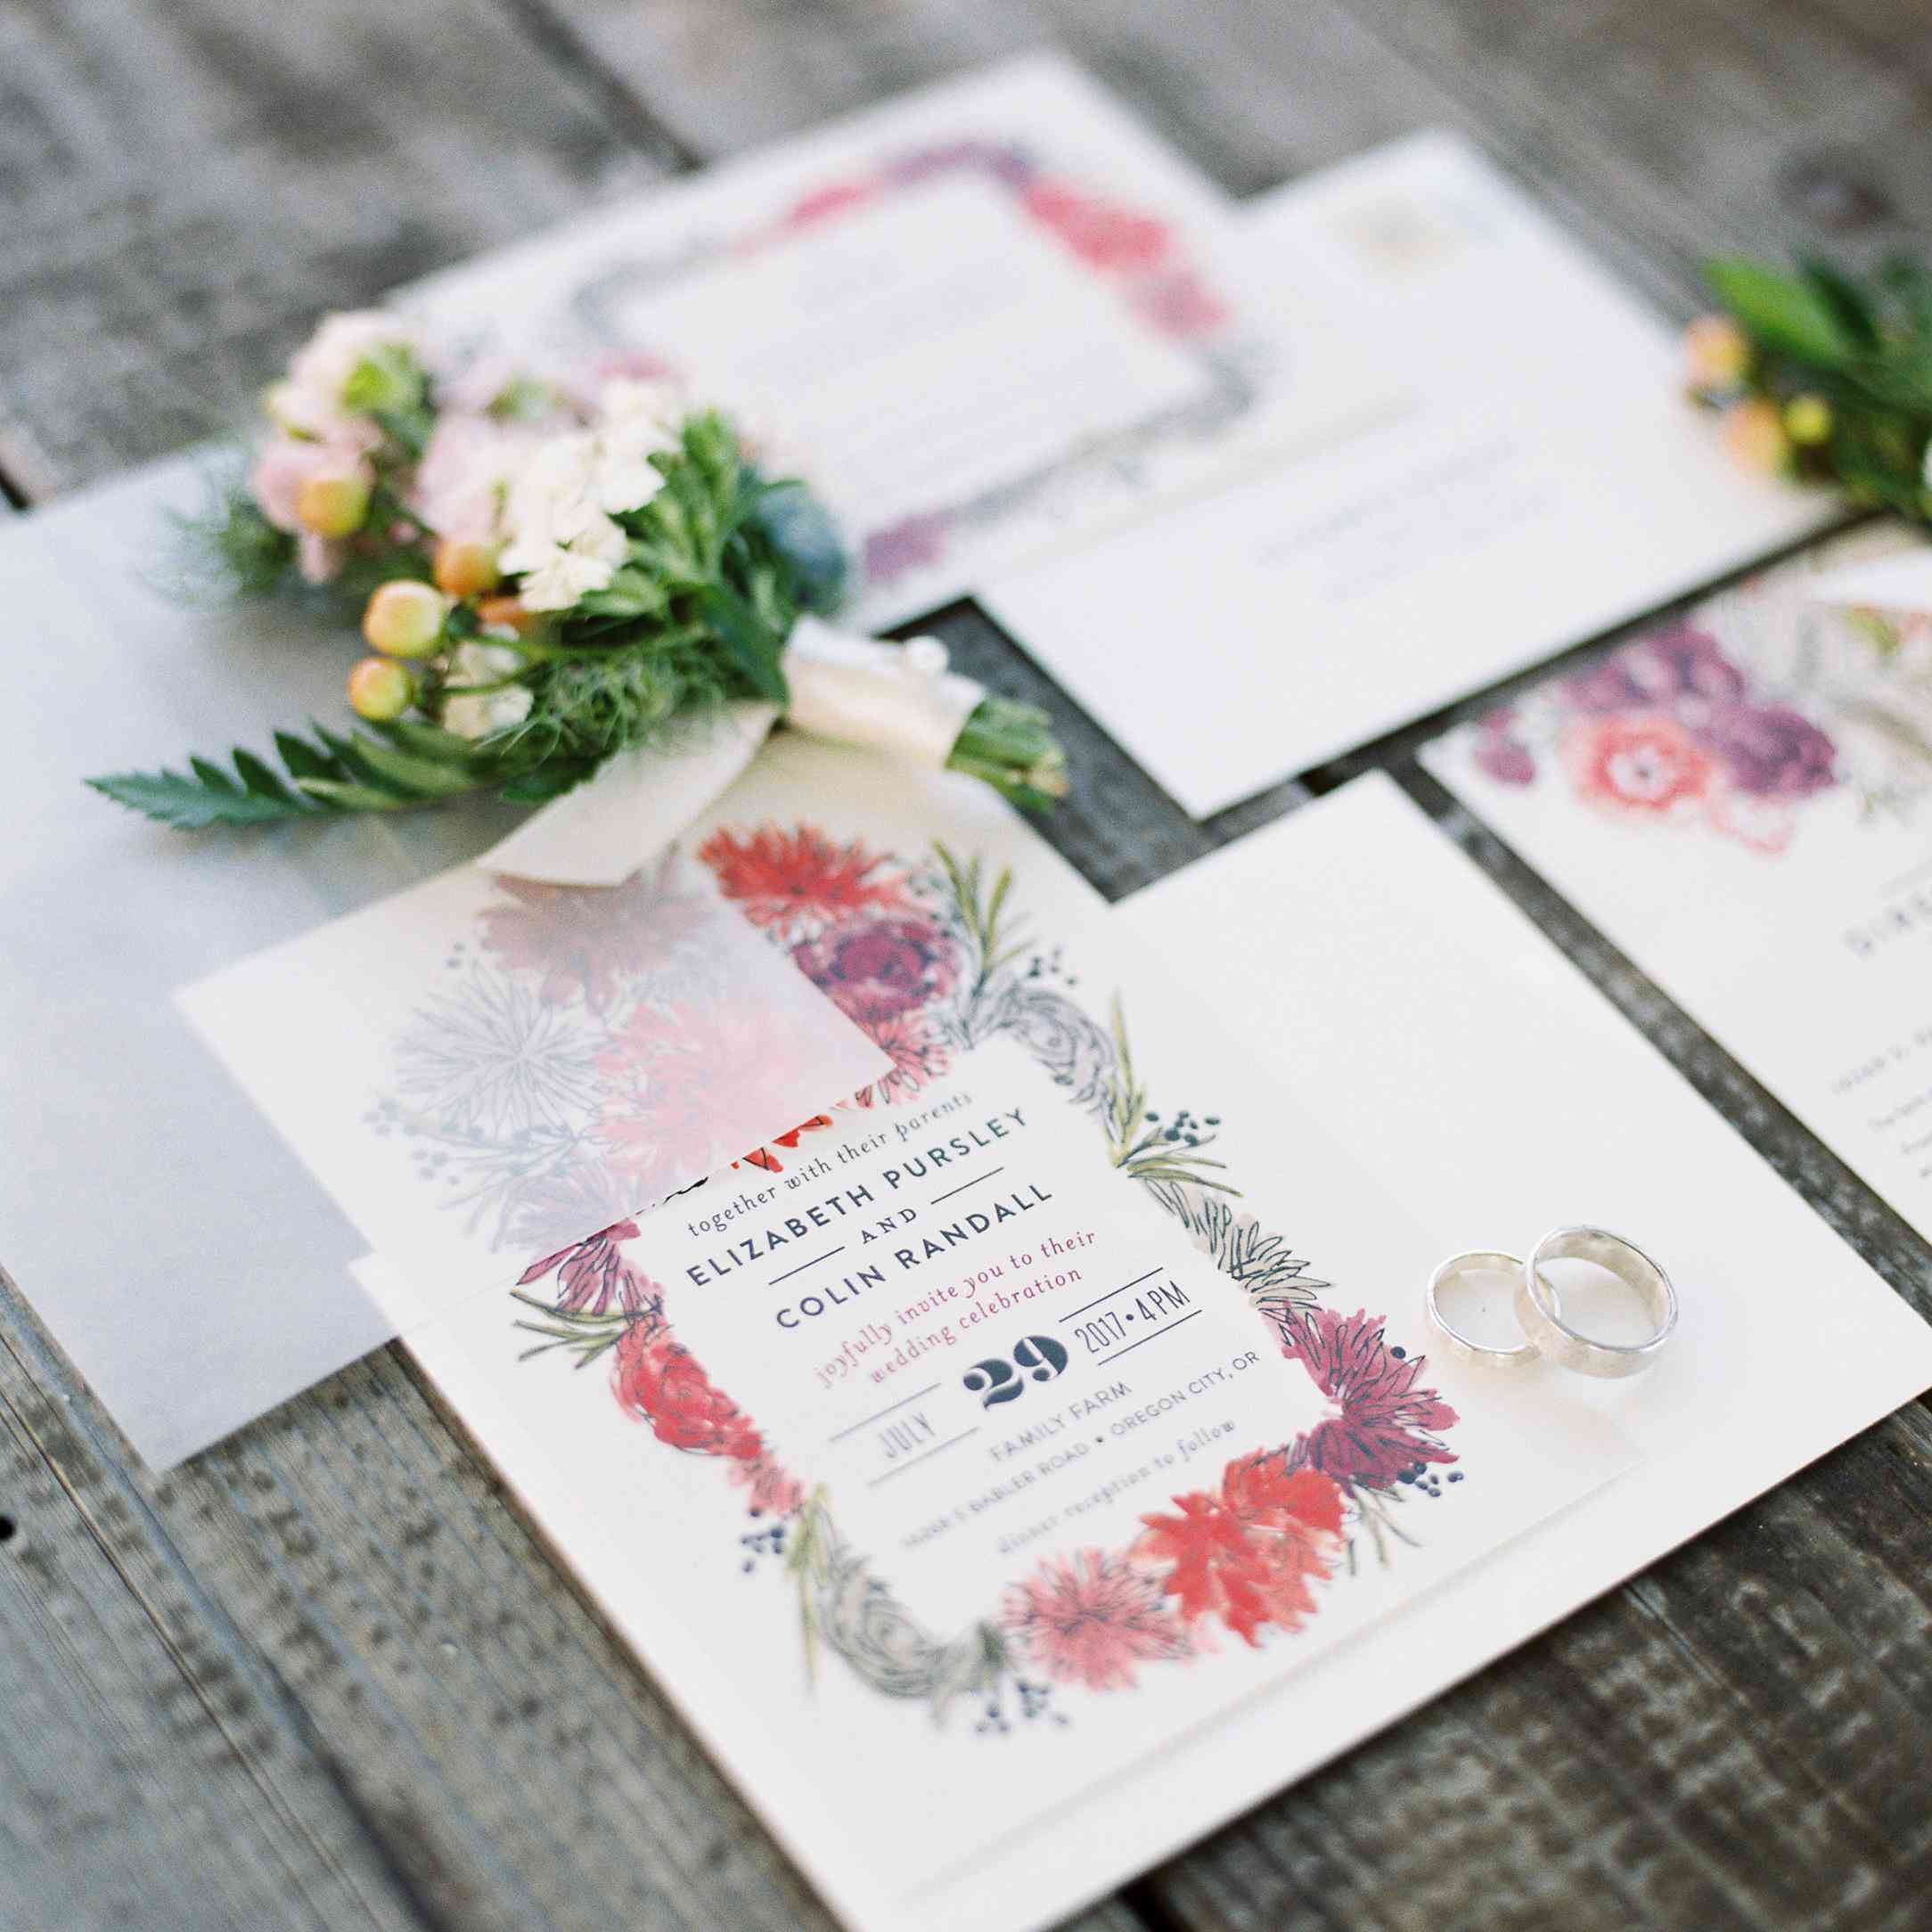 When Do You Send Out Wedding Invitations.Wondering What To Include In A Wedding Invitation Suite Here S